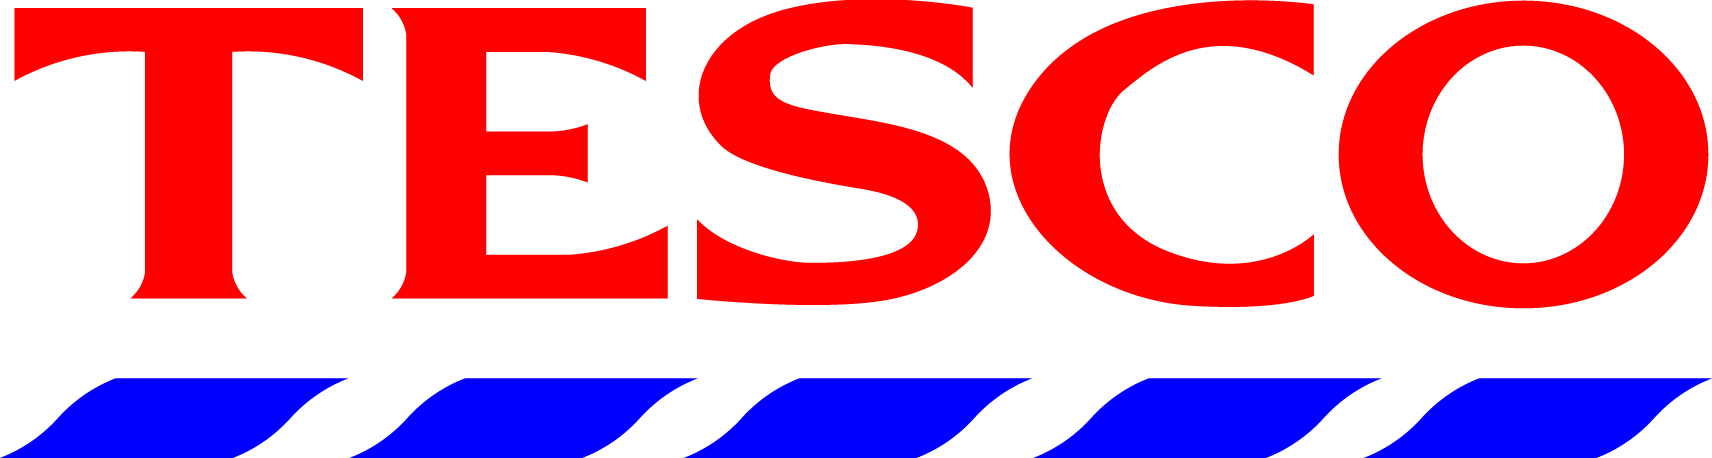 Tesco Express Refresh Roll Out